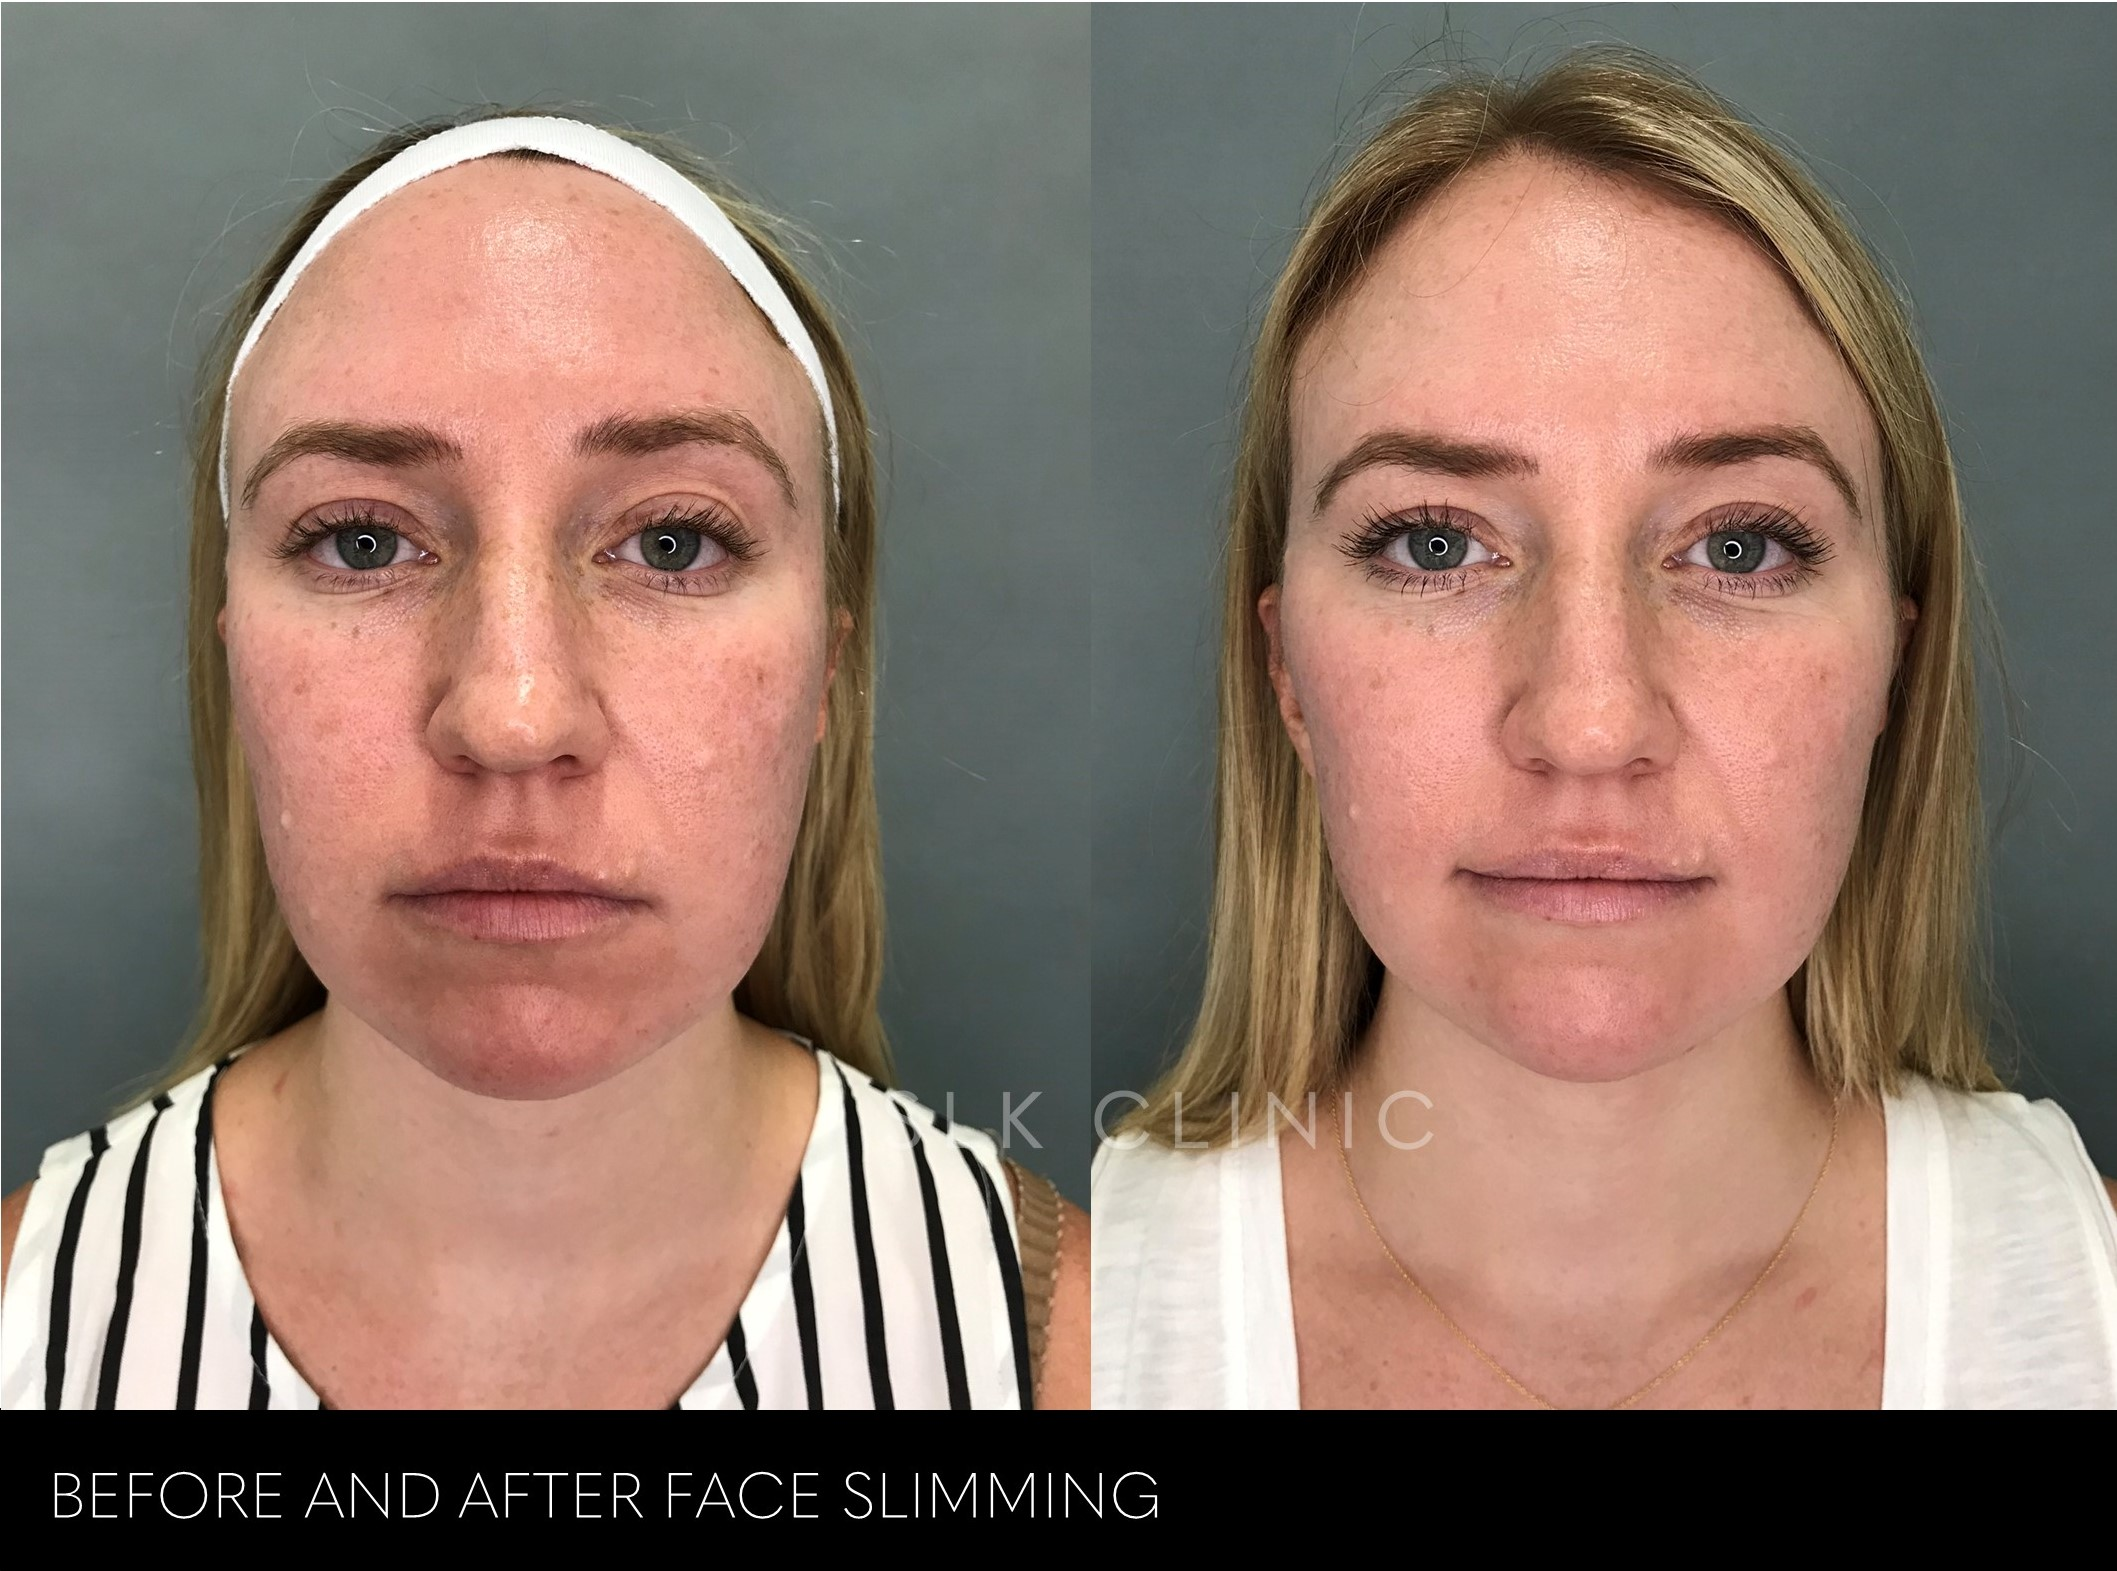 before and after photo of face slimming for woman in her 20s